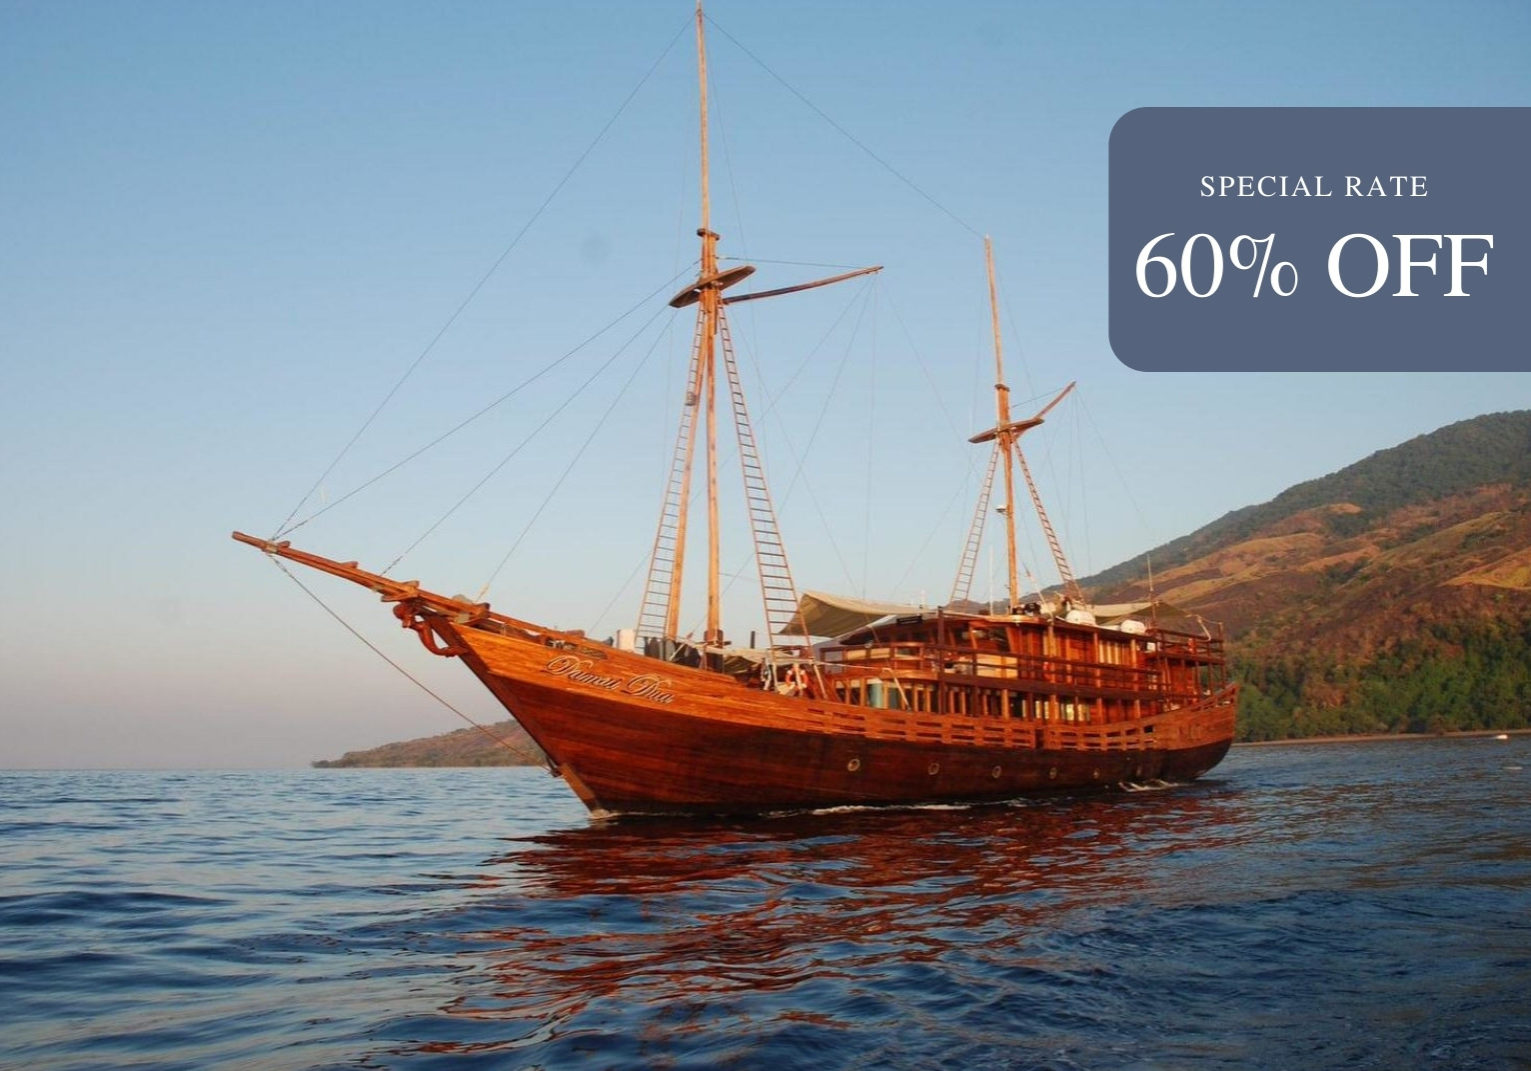 Damai II LIveaboard | Special Rate 60% Off | | Hello Flores